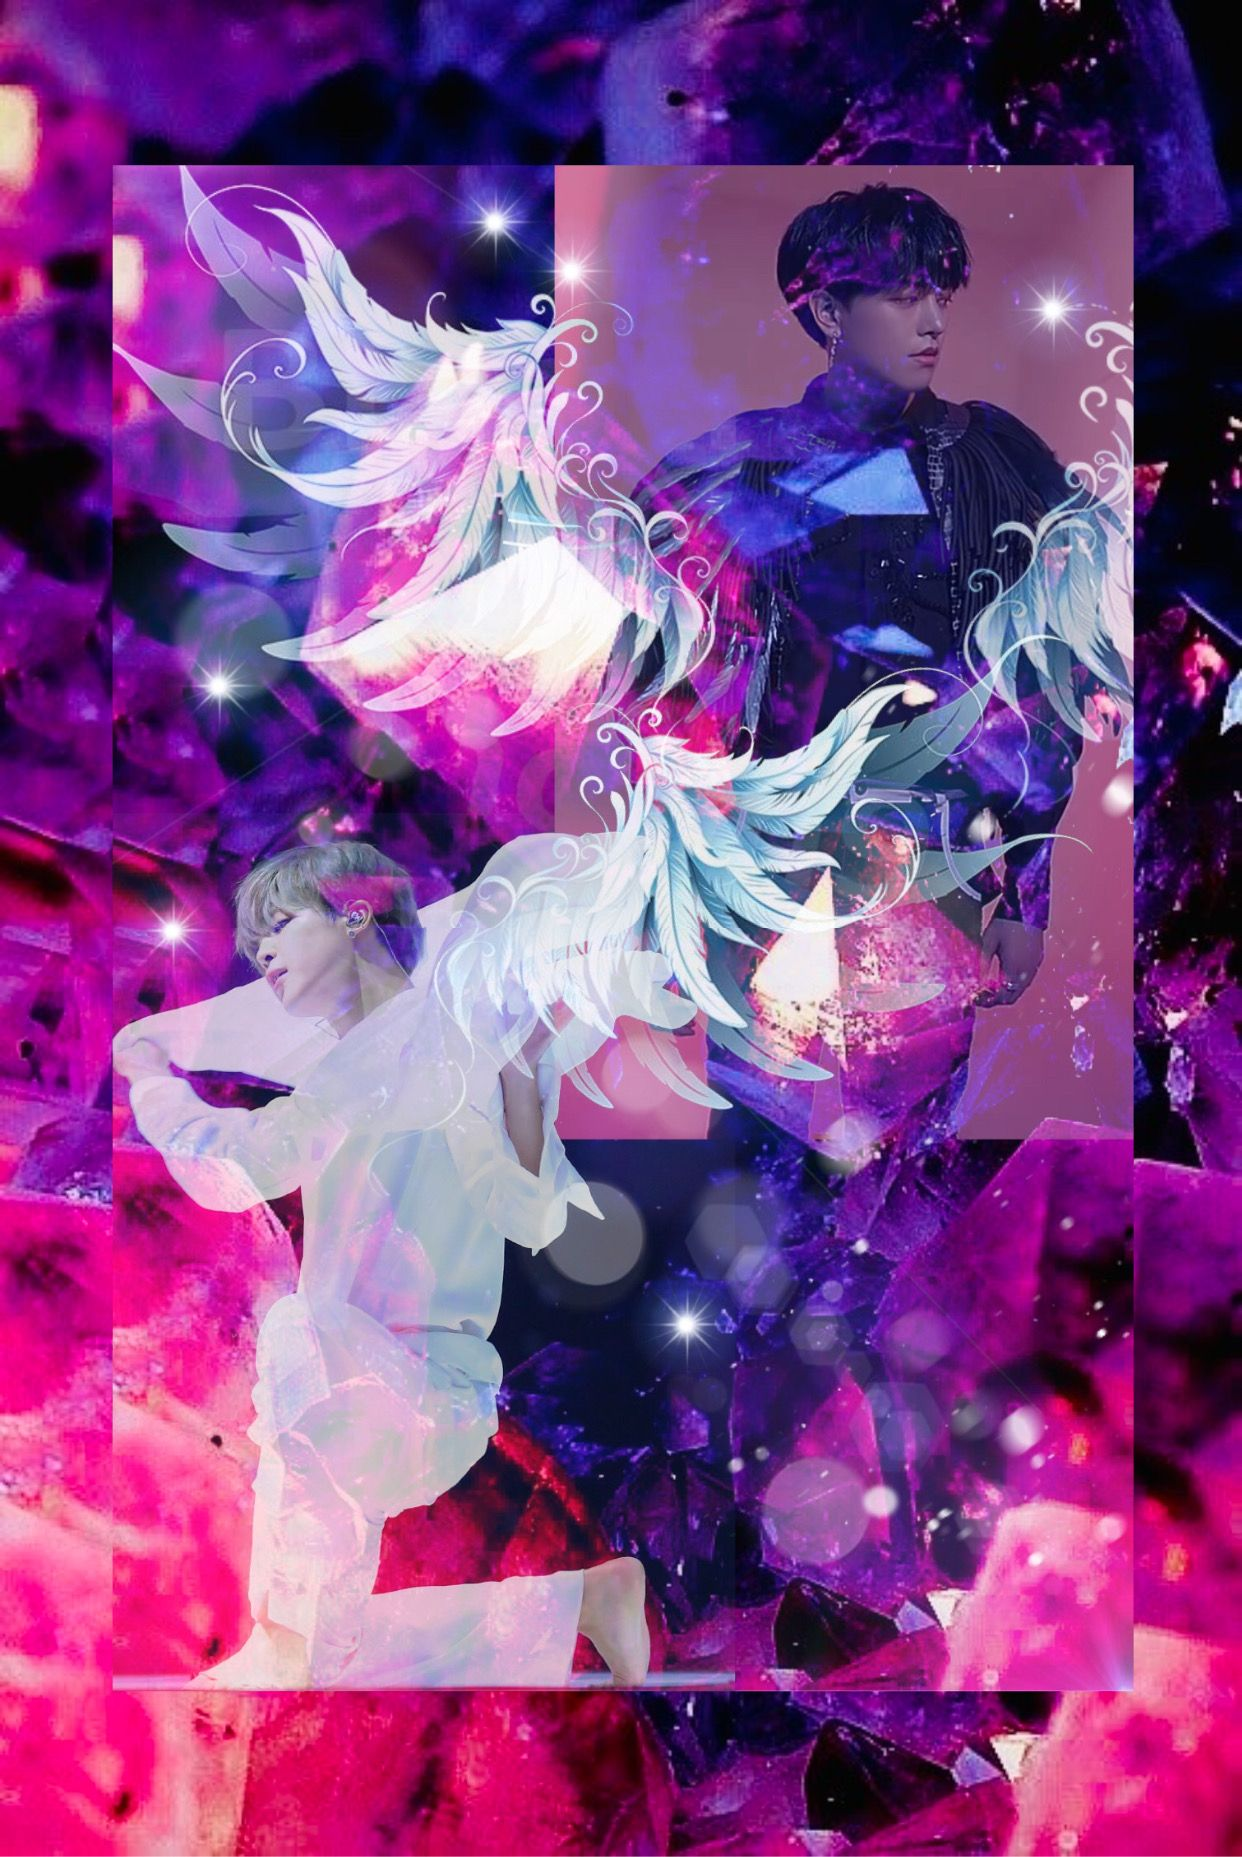 Pin by Joyee on BTS (With images) Anime, Art, Wallpaper